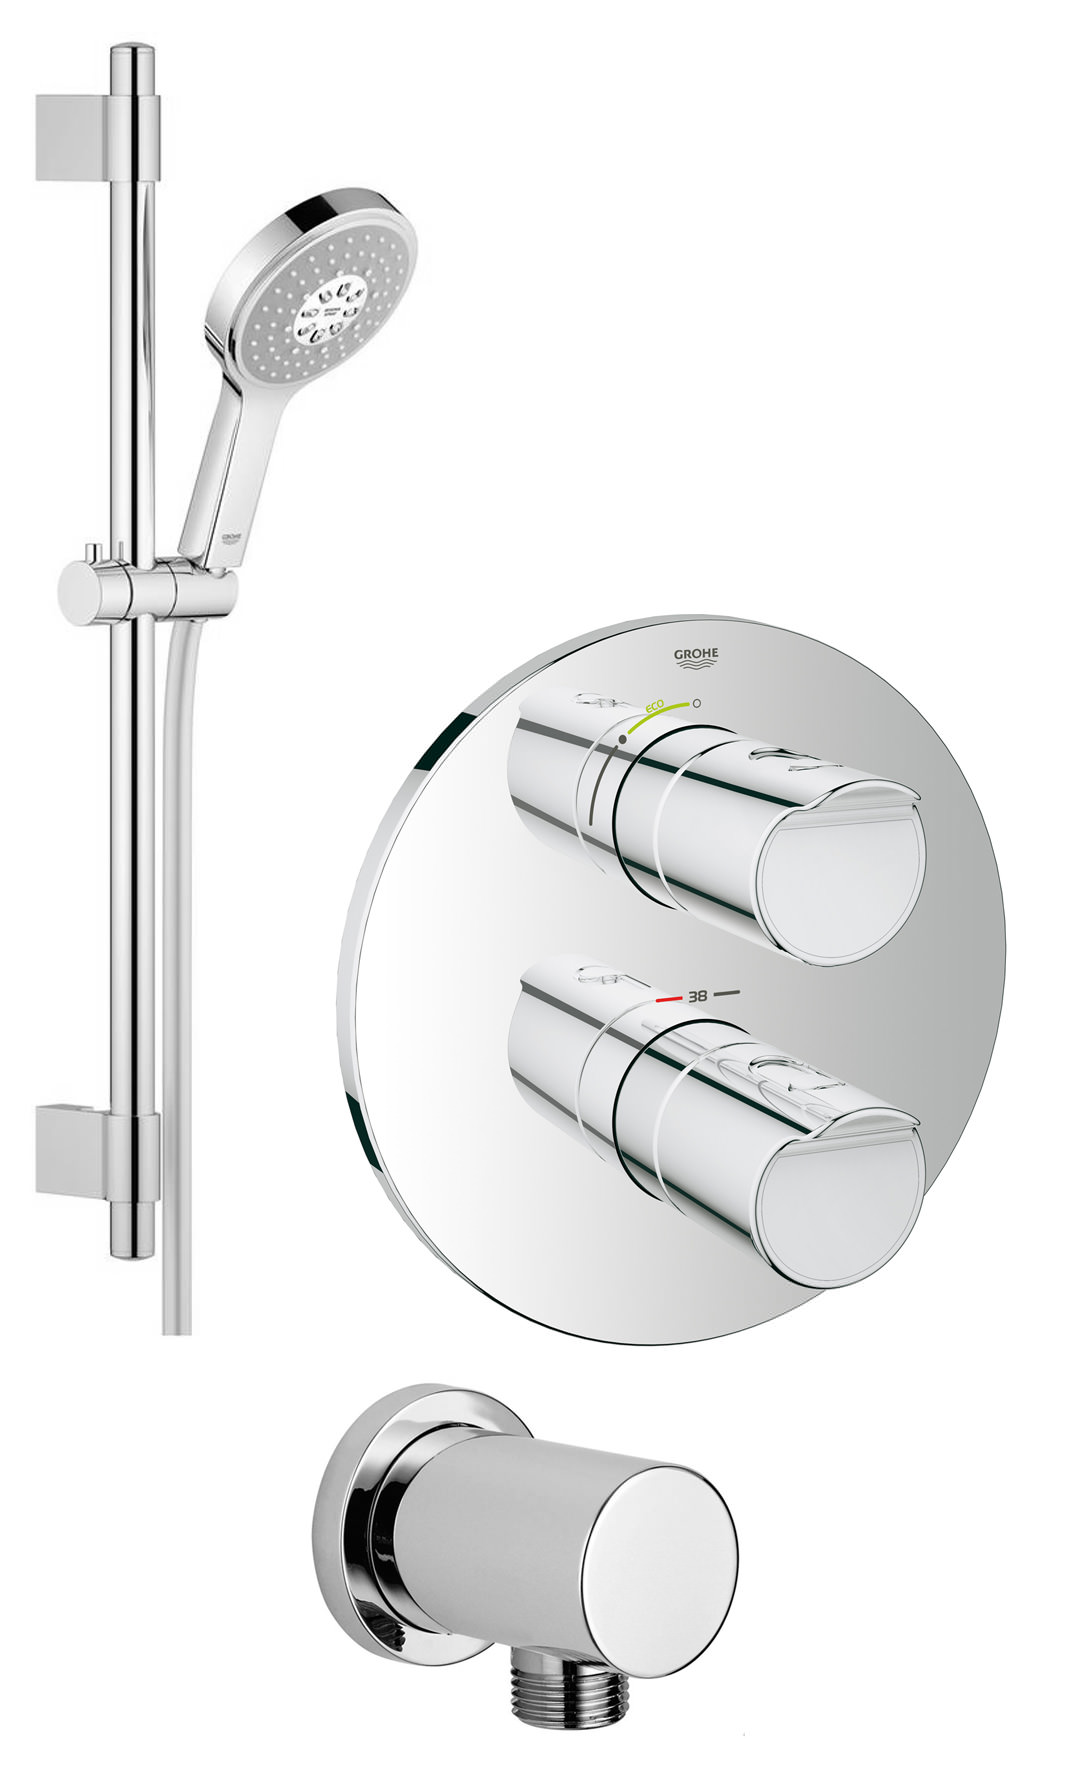 Grohe 2000 Grohe Grohtherm 2000 New Plus Power And Soul Shower Solution Pack 1